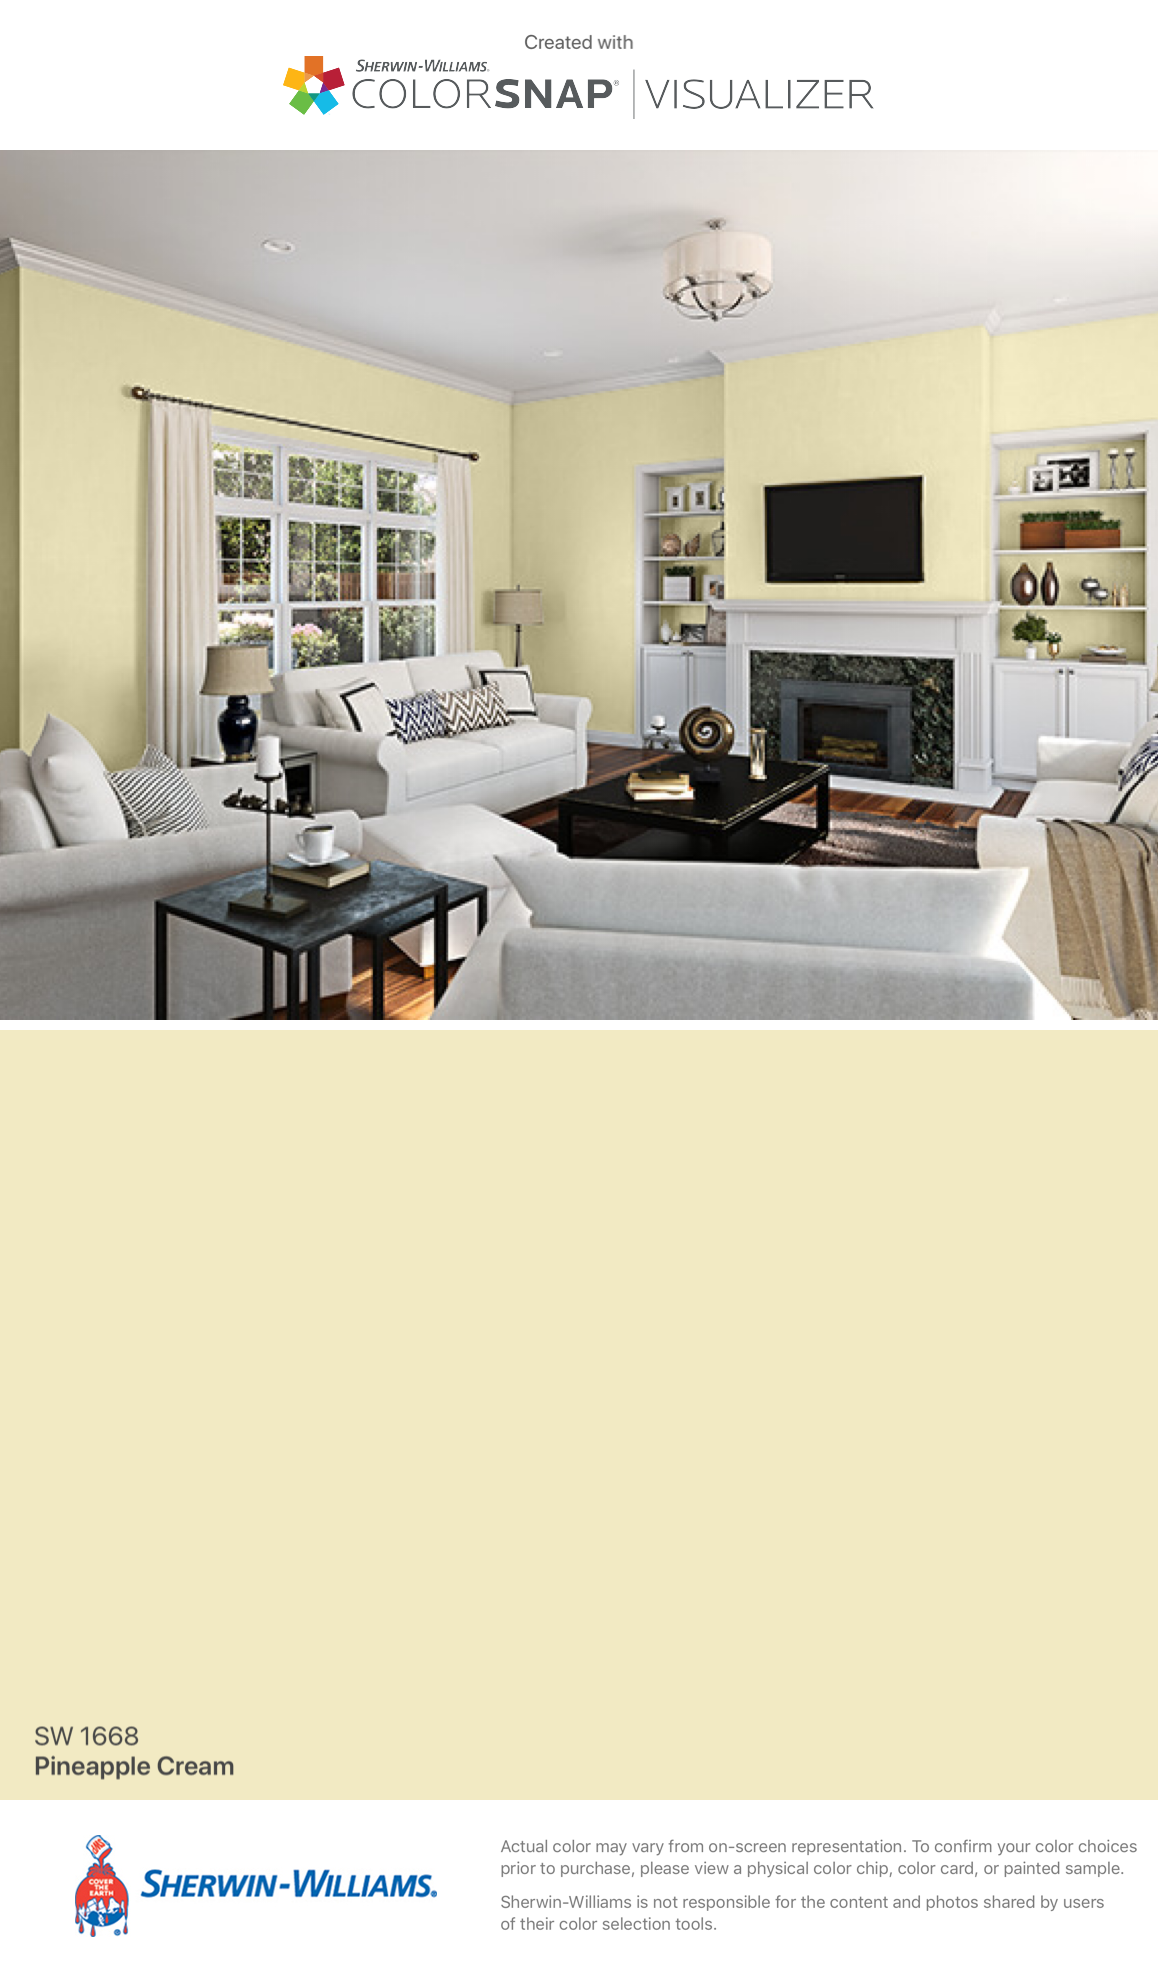 I Found This Color With Colorsnap Visualizer For Iphone By Sherwin Williams Pineapple Cream Sw 1668 Paint Colors For Living Room Sherwin Williams Home